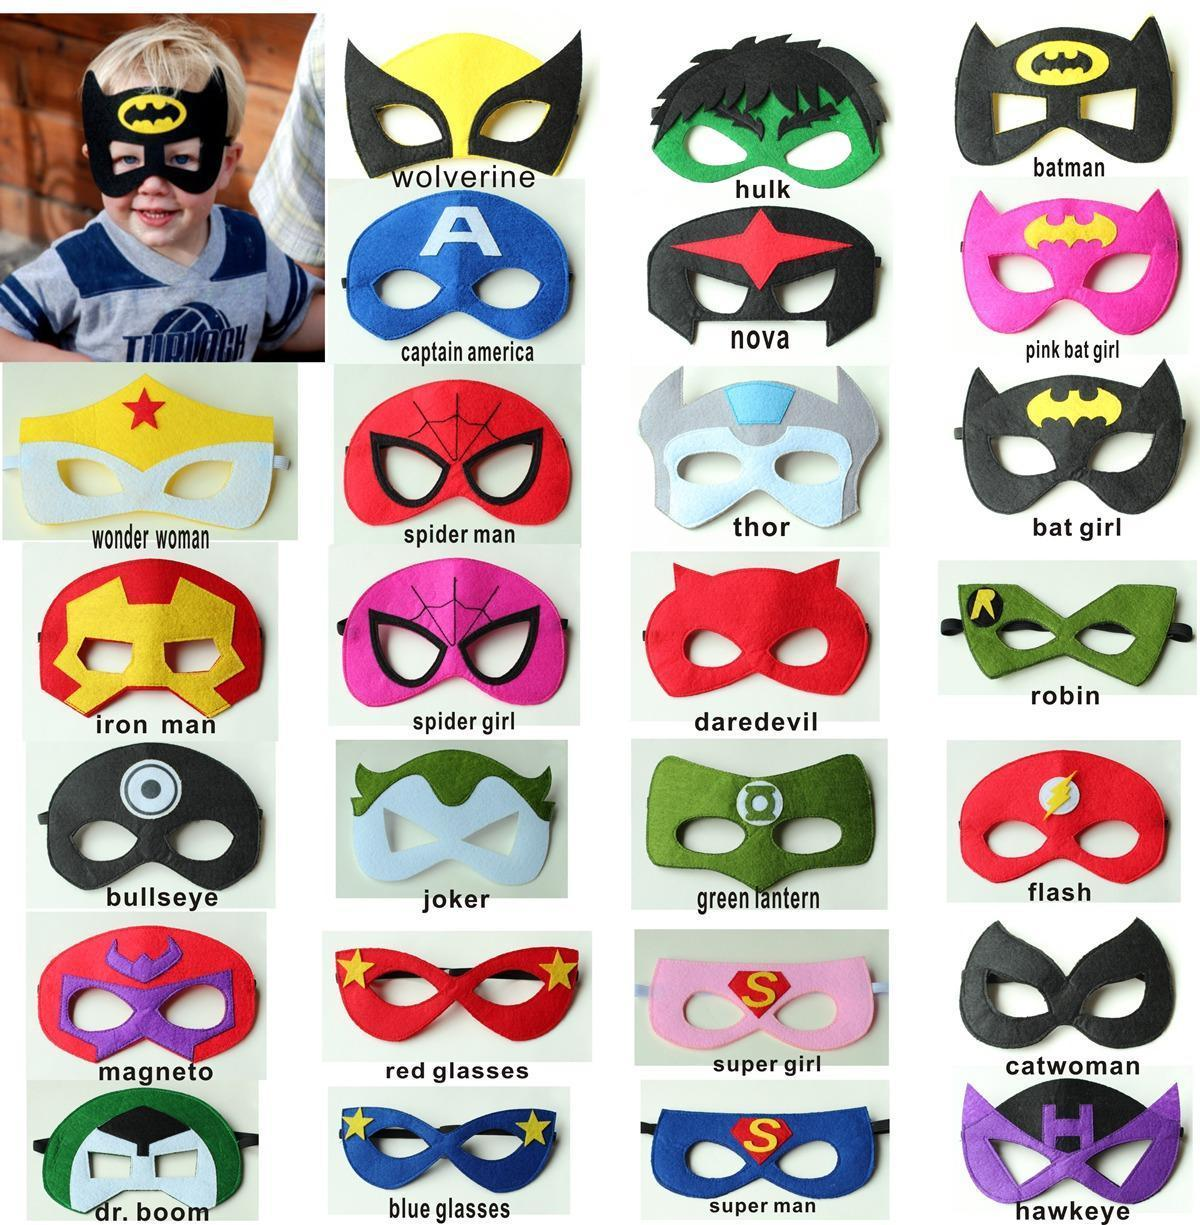 new party masks for baby kids child half face movie star cartoon super hero superhero masks for halloween birthday party y223 gold mask for masquerade ball - Baby Halloween Birthday Party